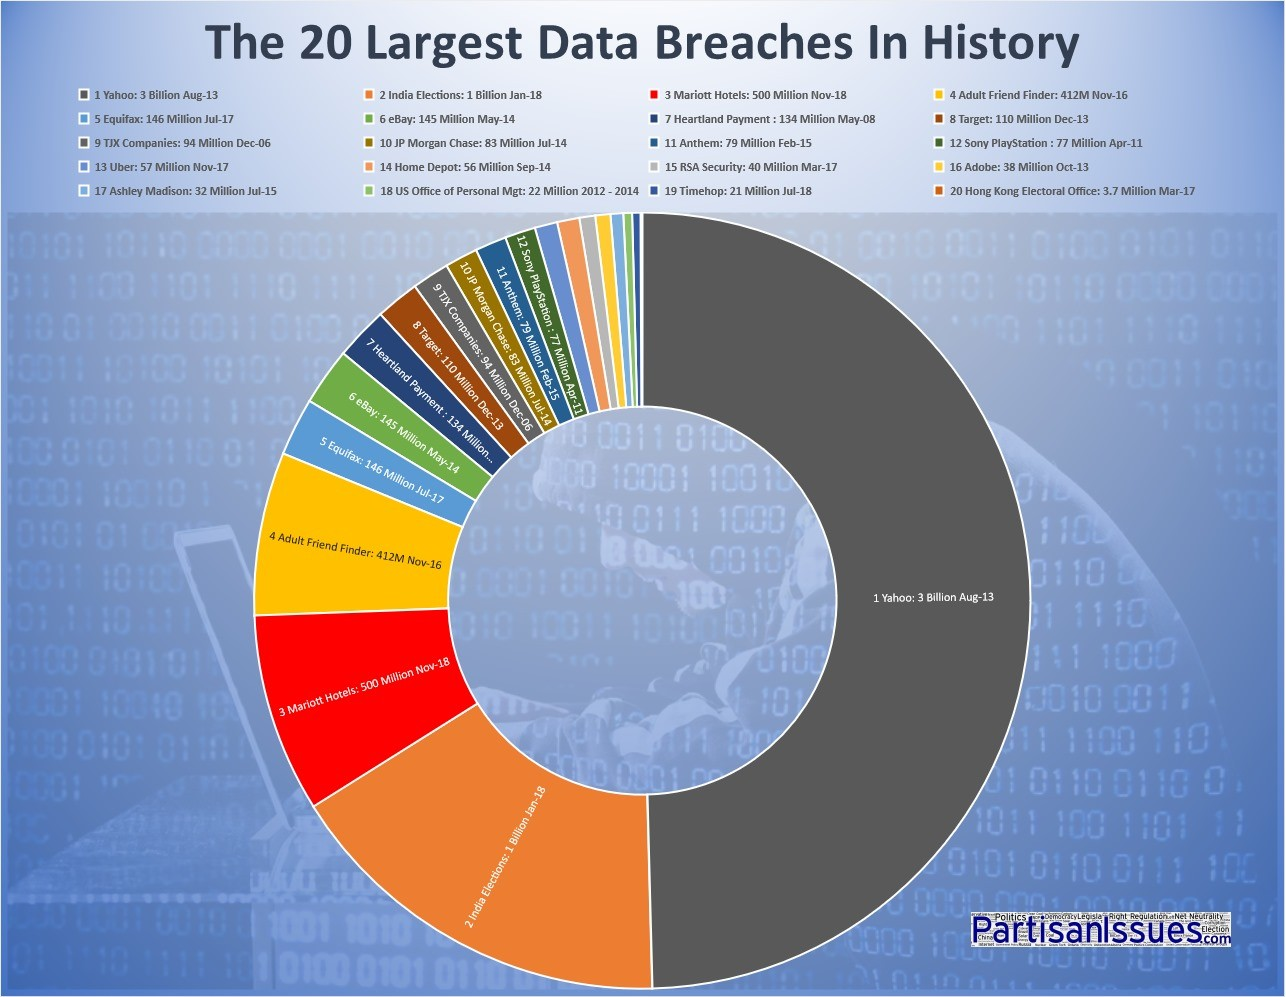 The 20 Largest Data Breaches In History – Partisan Issues